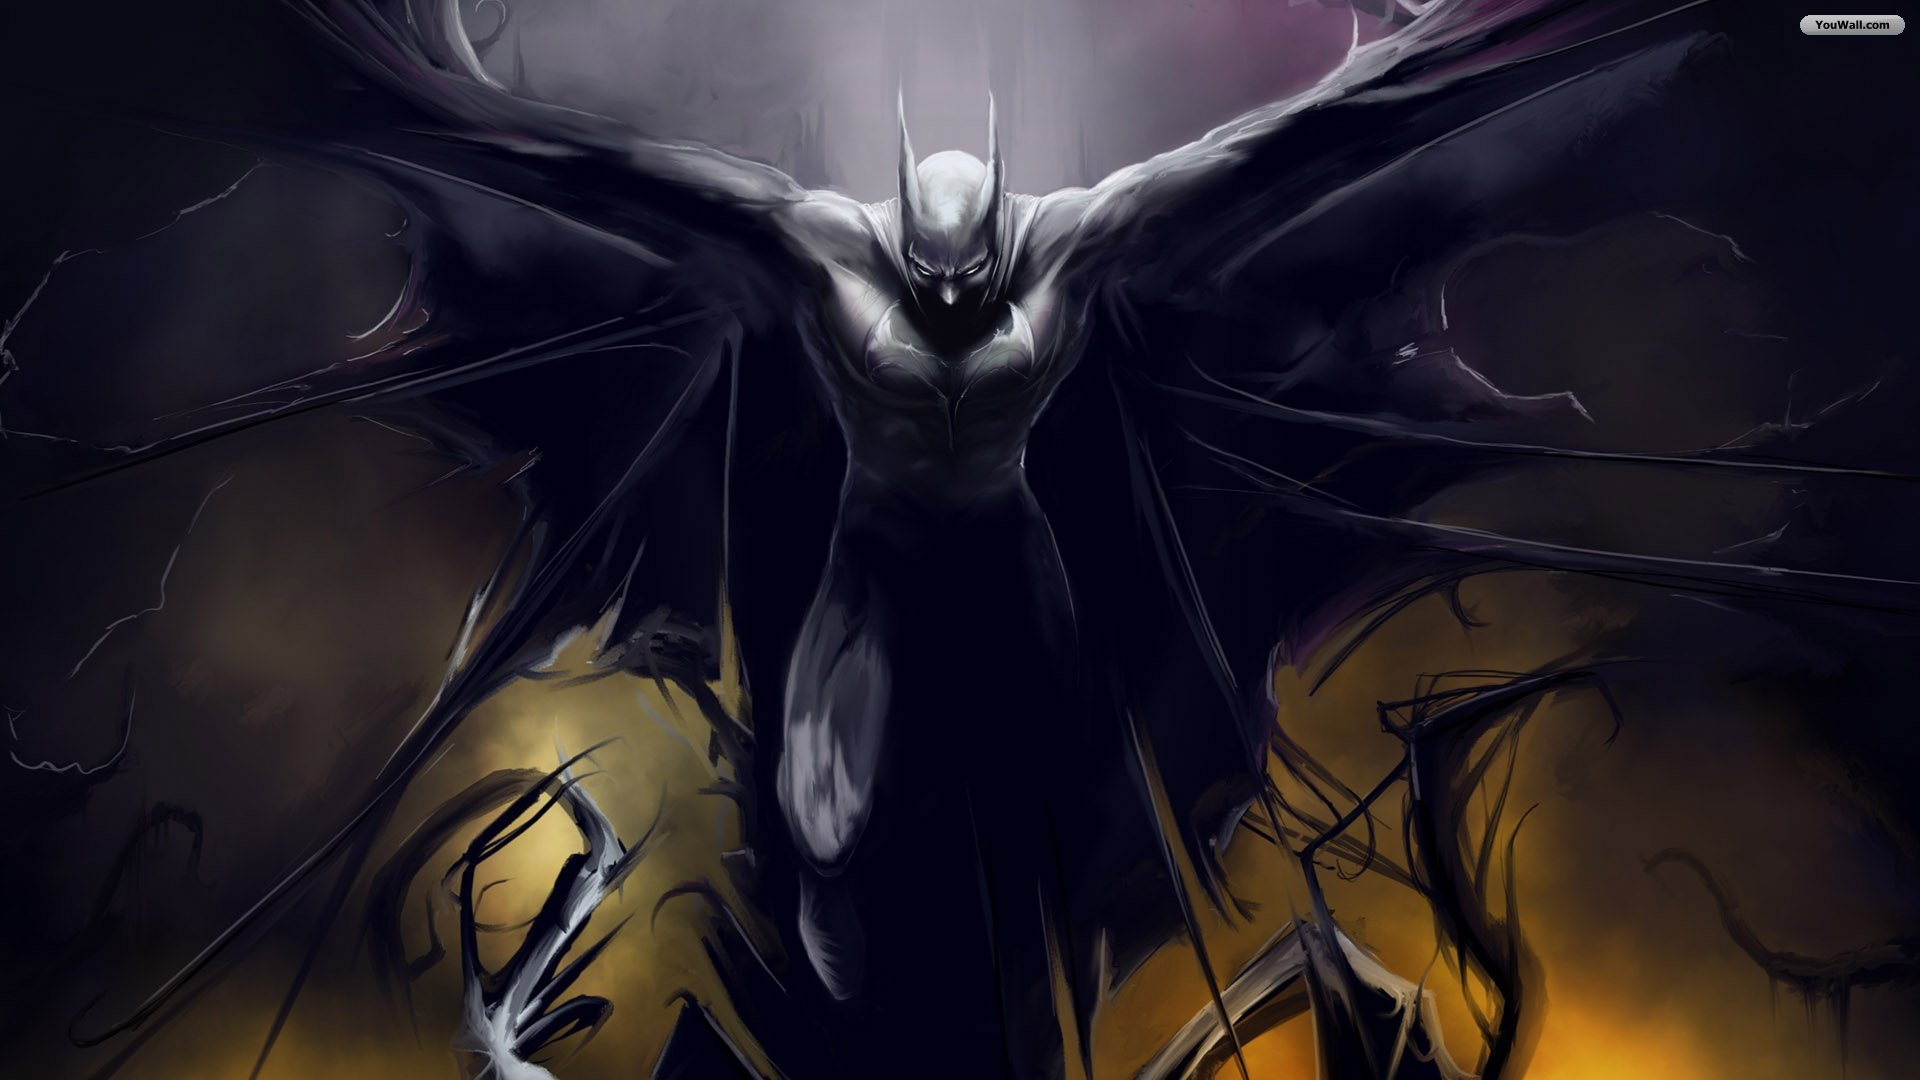 Batman desktop wallpapers Batman wallpapers 1920x1080